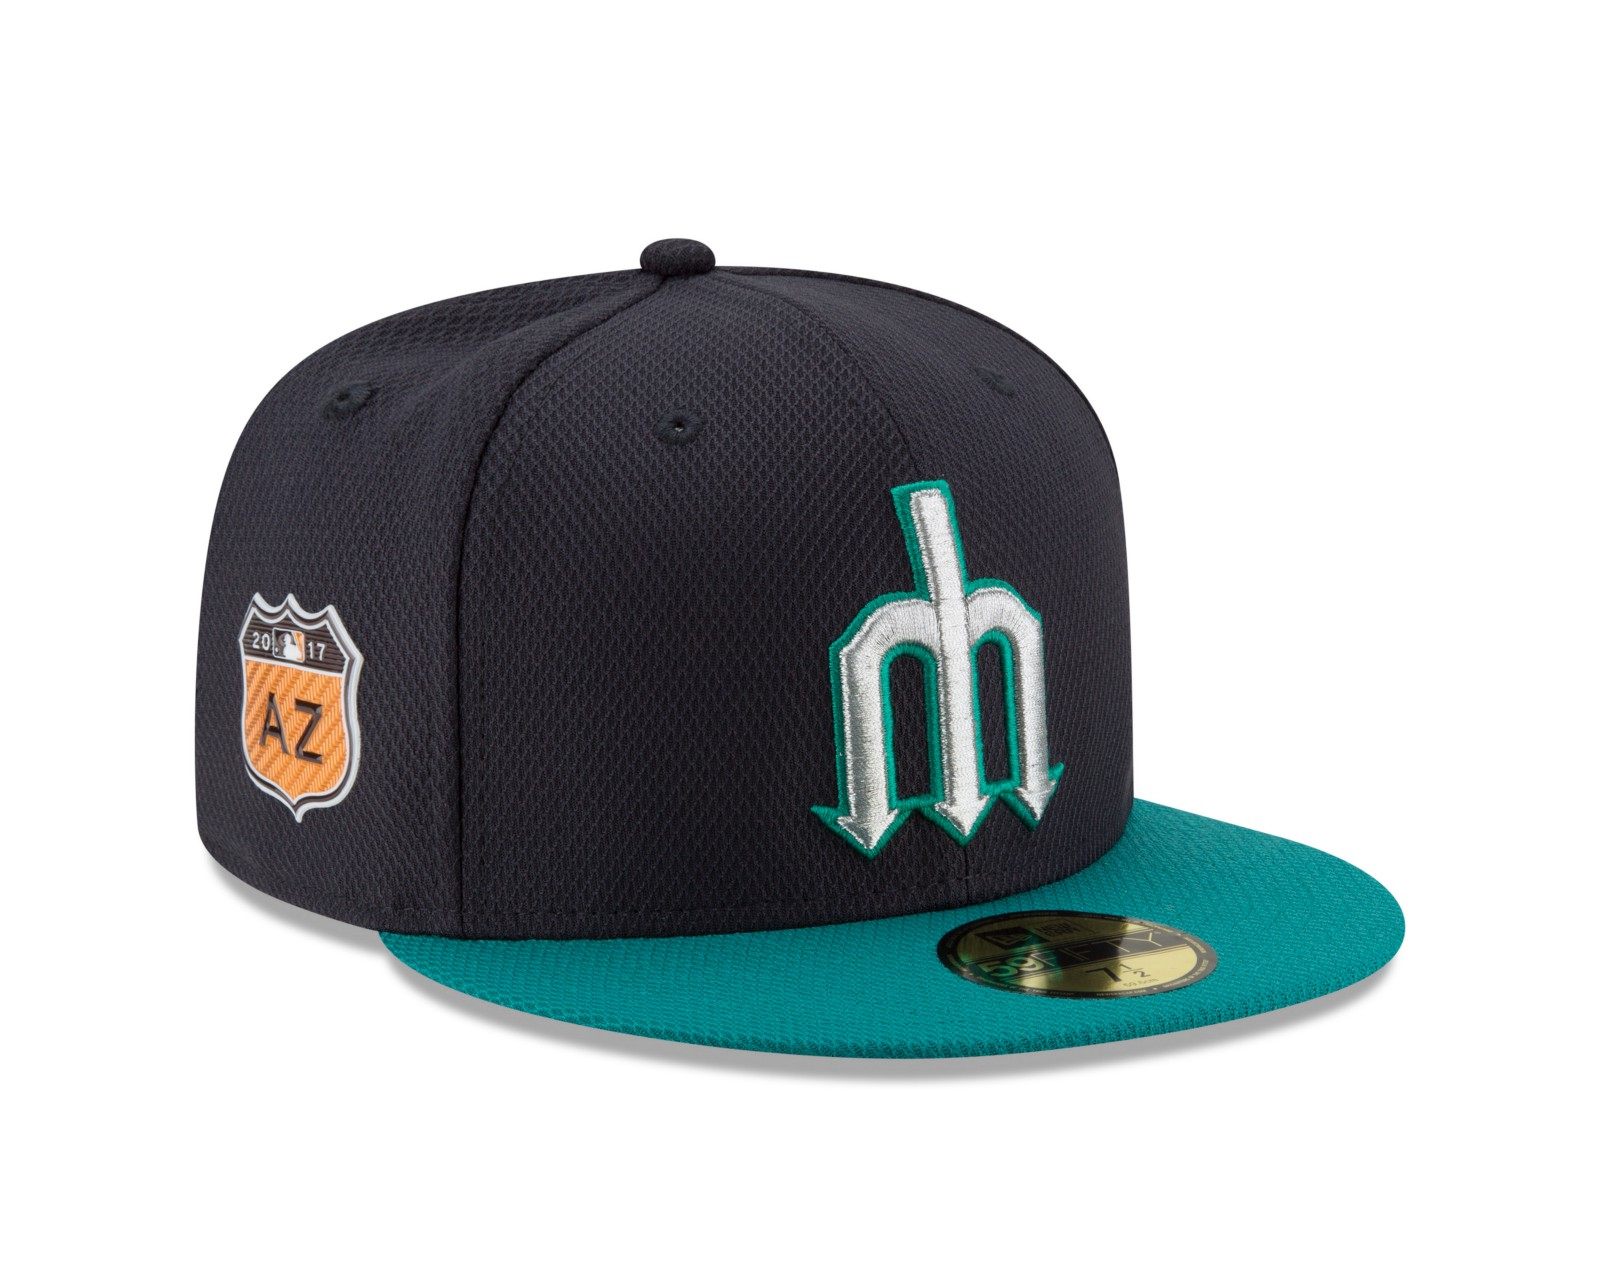 c1d4f7a1020 The Mariners are one of seven MLB teams getting an updated design for their  on-field caps for Spring Training. (The others are the Yankees